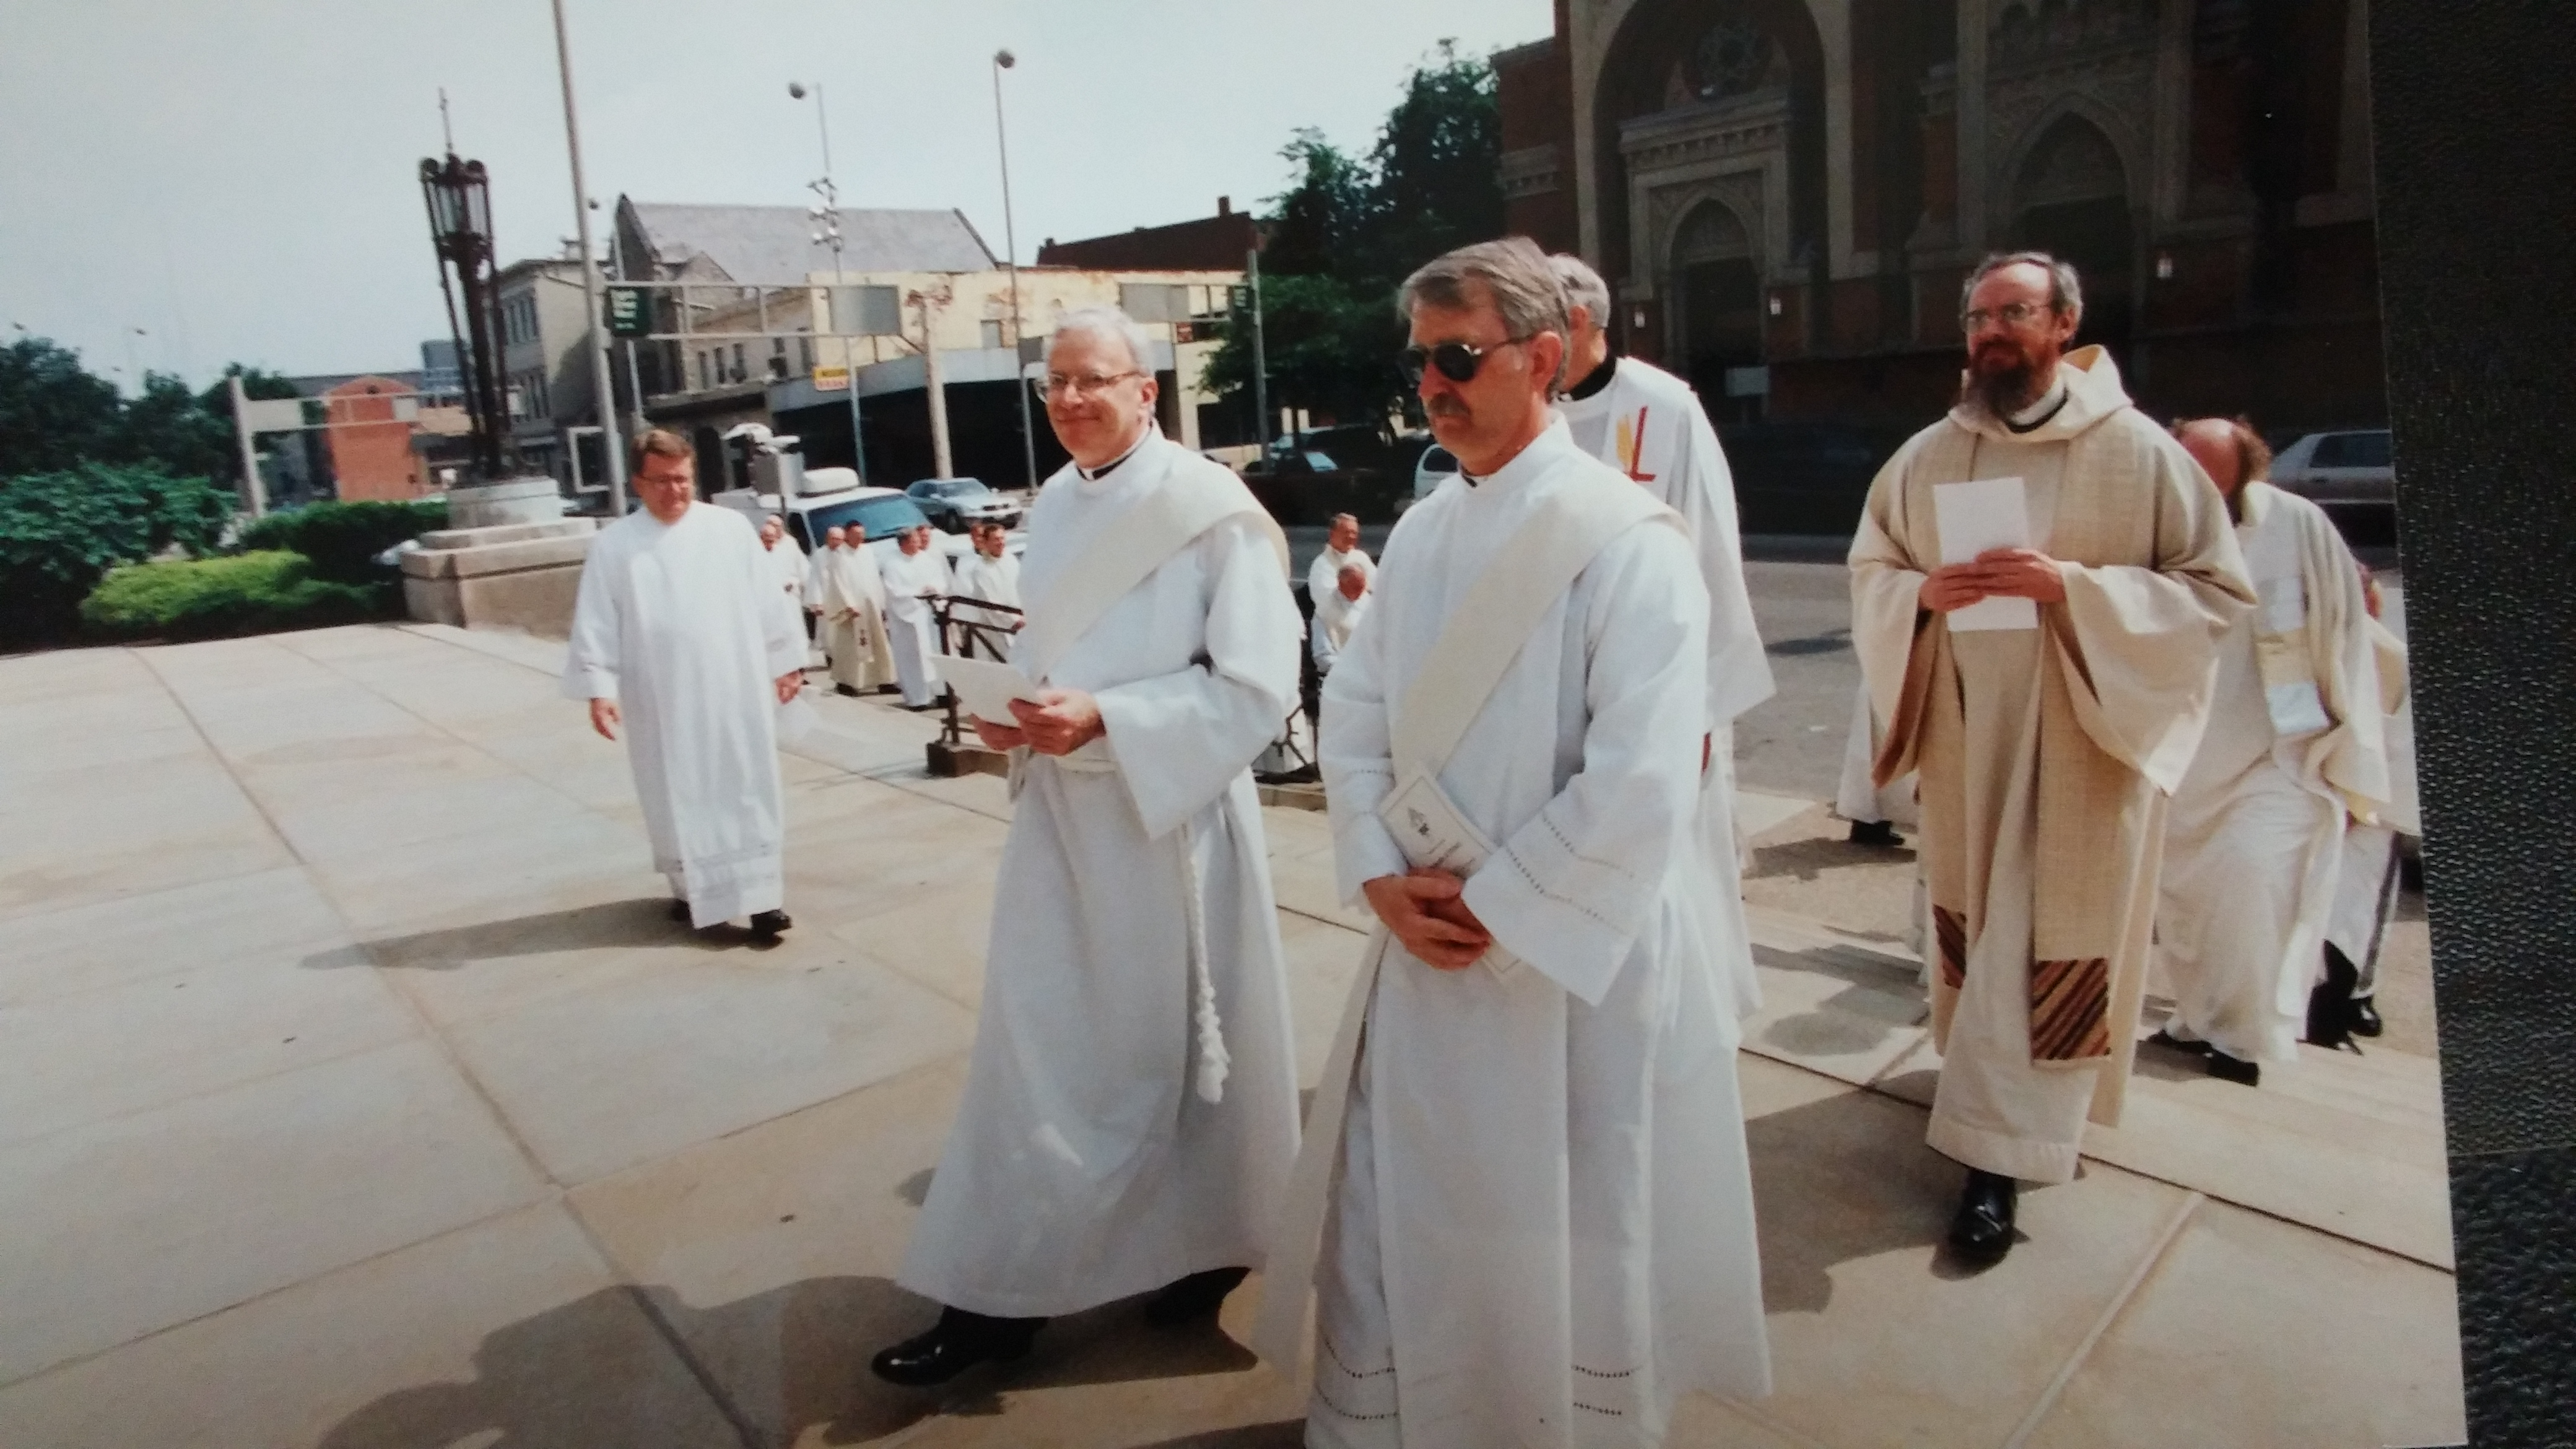 Patrick Welsh and Patrick Sheridan process into St. Peter in Chains Cathedral.